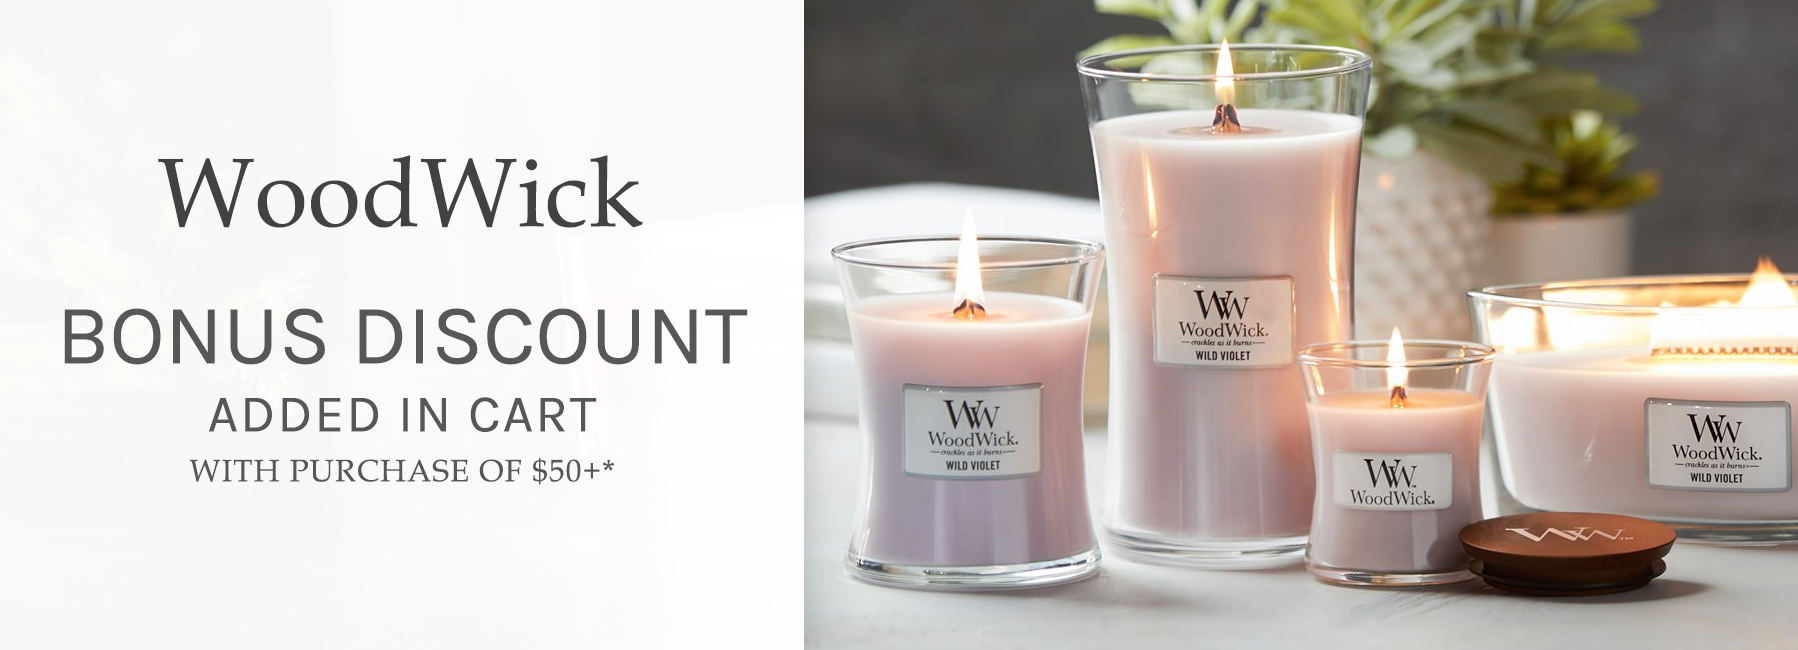 WoodWick - Bonus Discount Added in Cart when you spend $50+